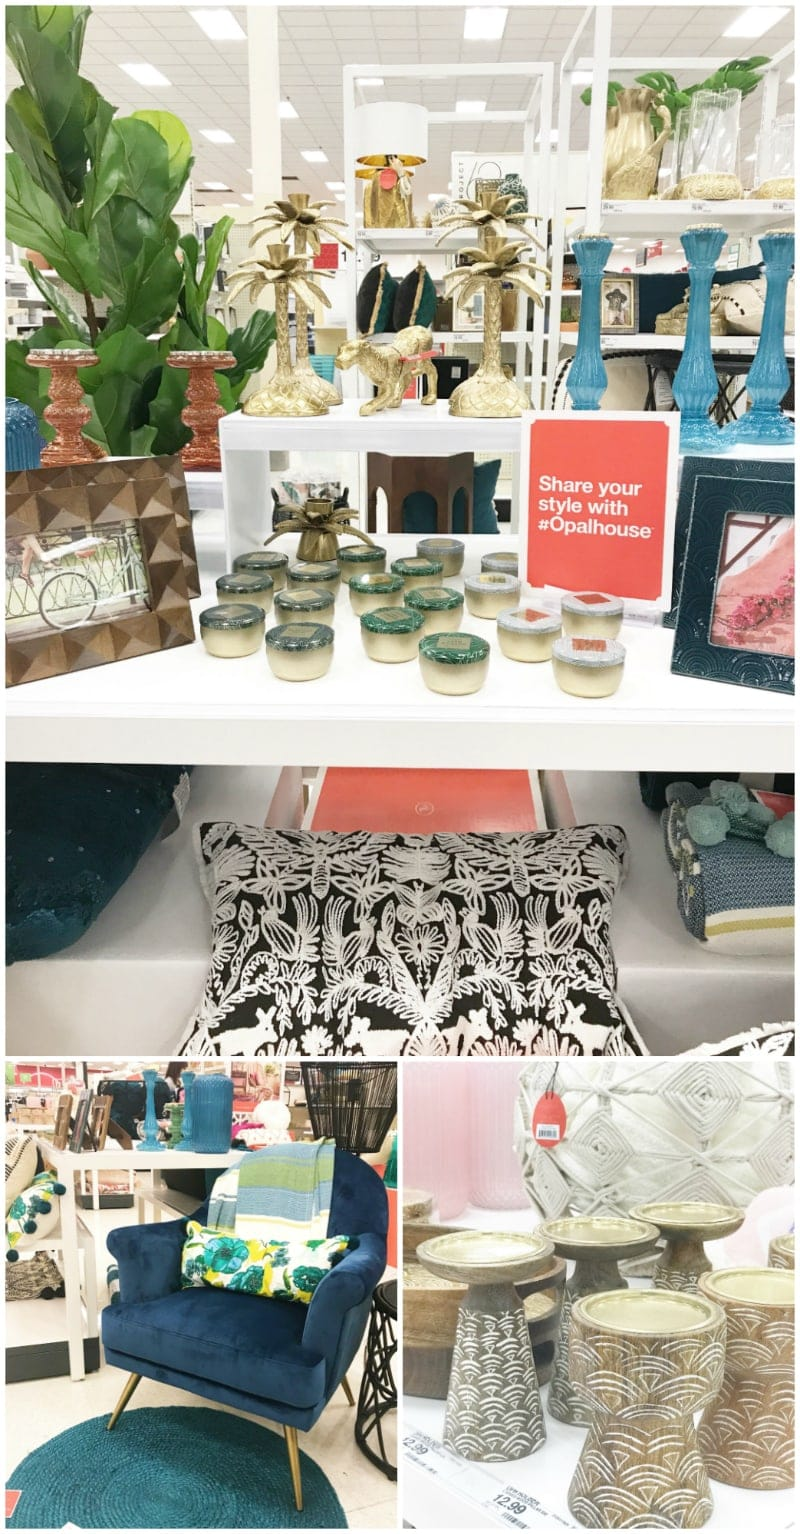 Target Home Decor: My Favorite Opalhouse at Target Pieces!